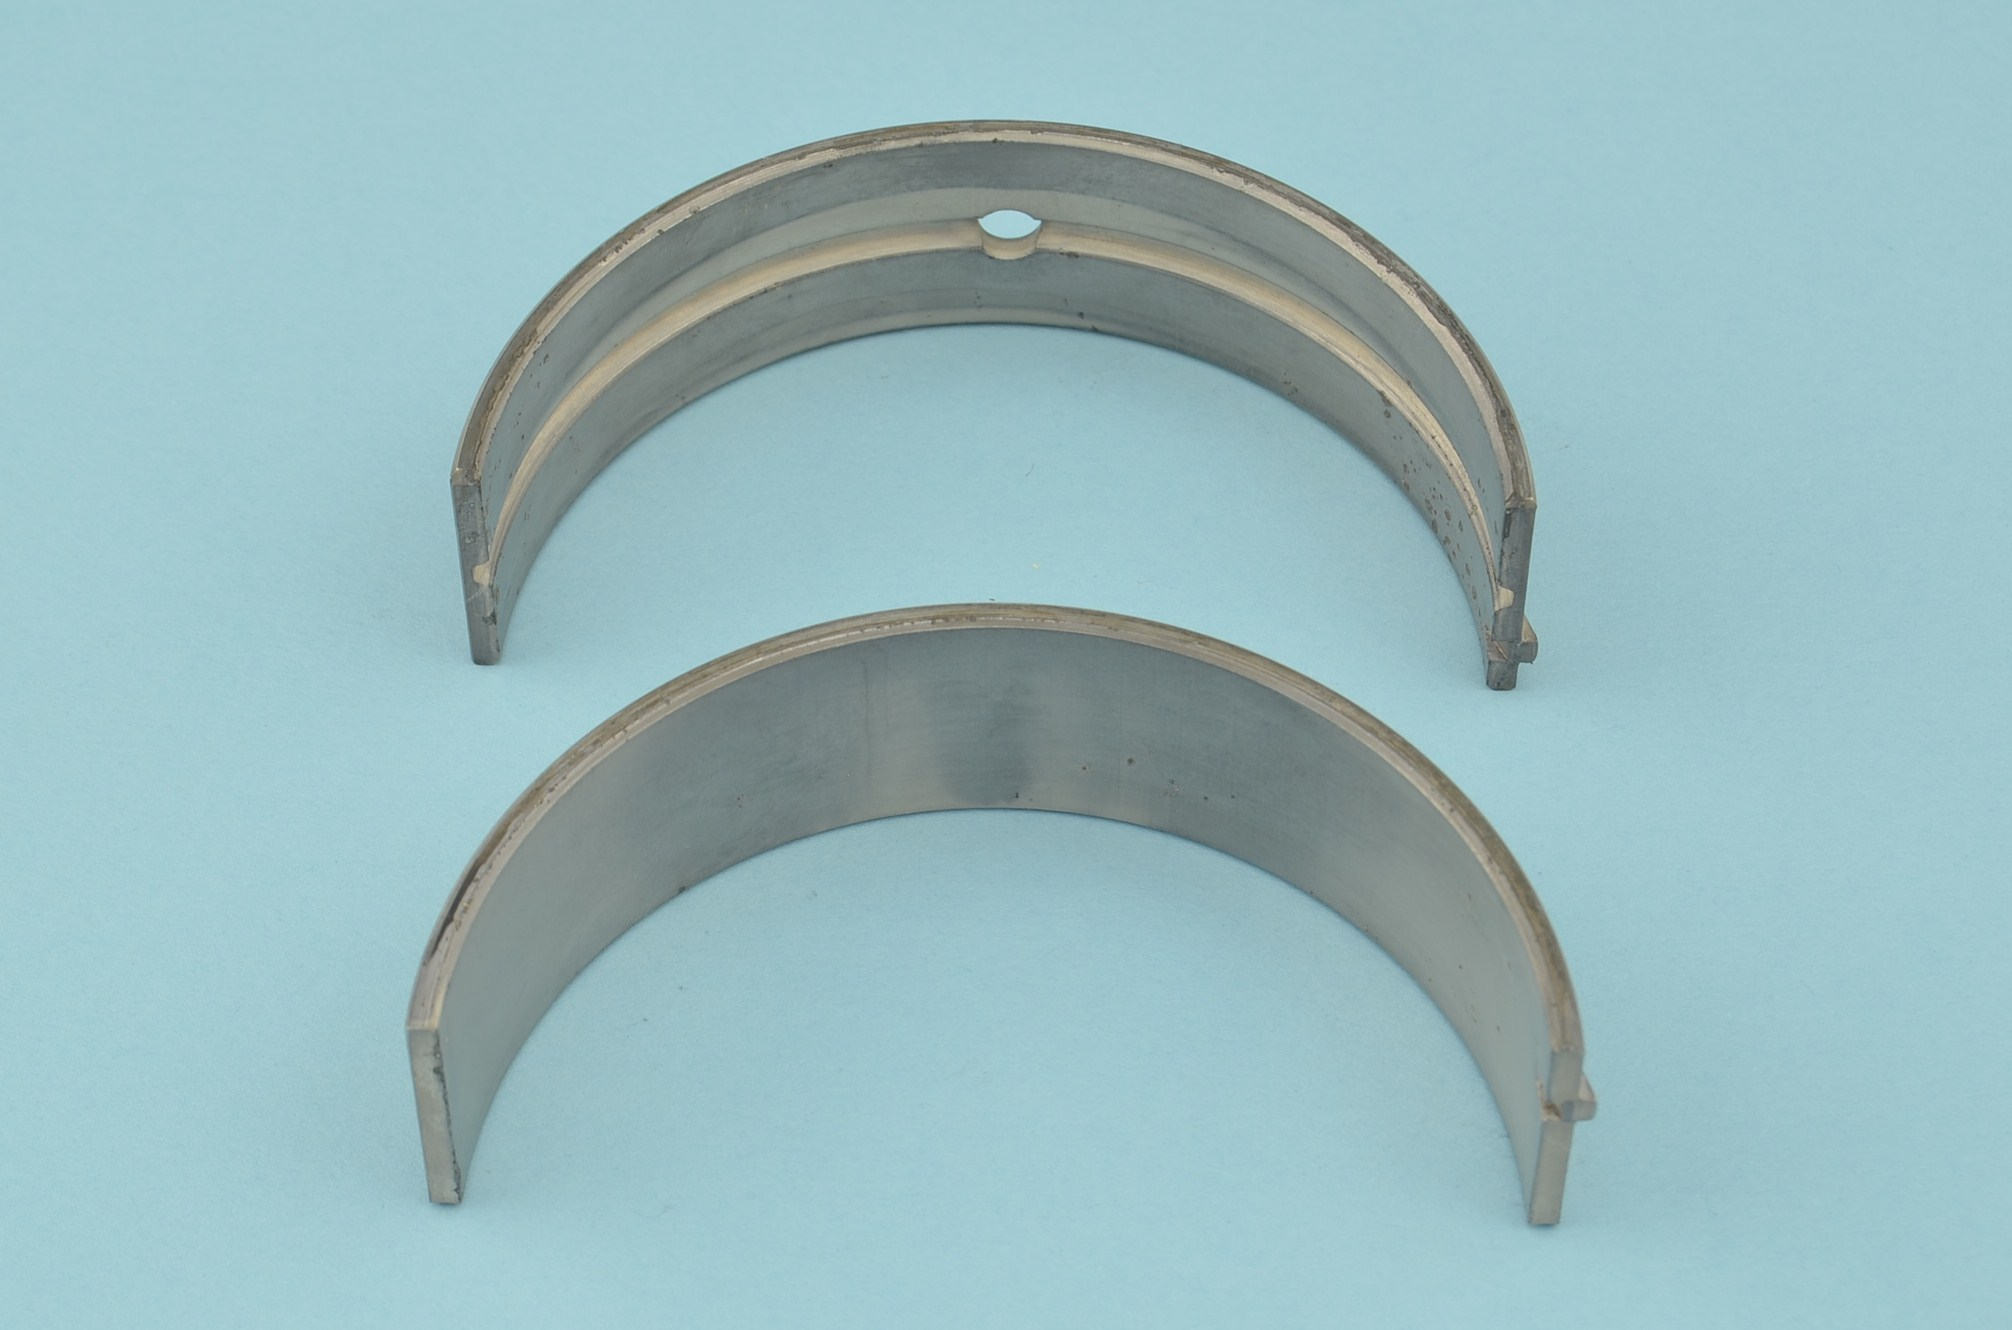 MAIN BEARING STANDARD ONE TWO AND FOUR